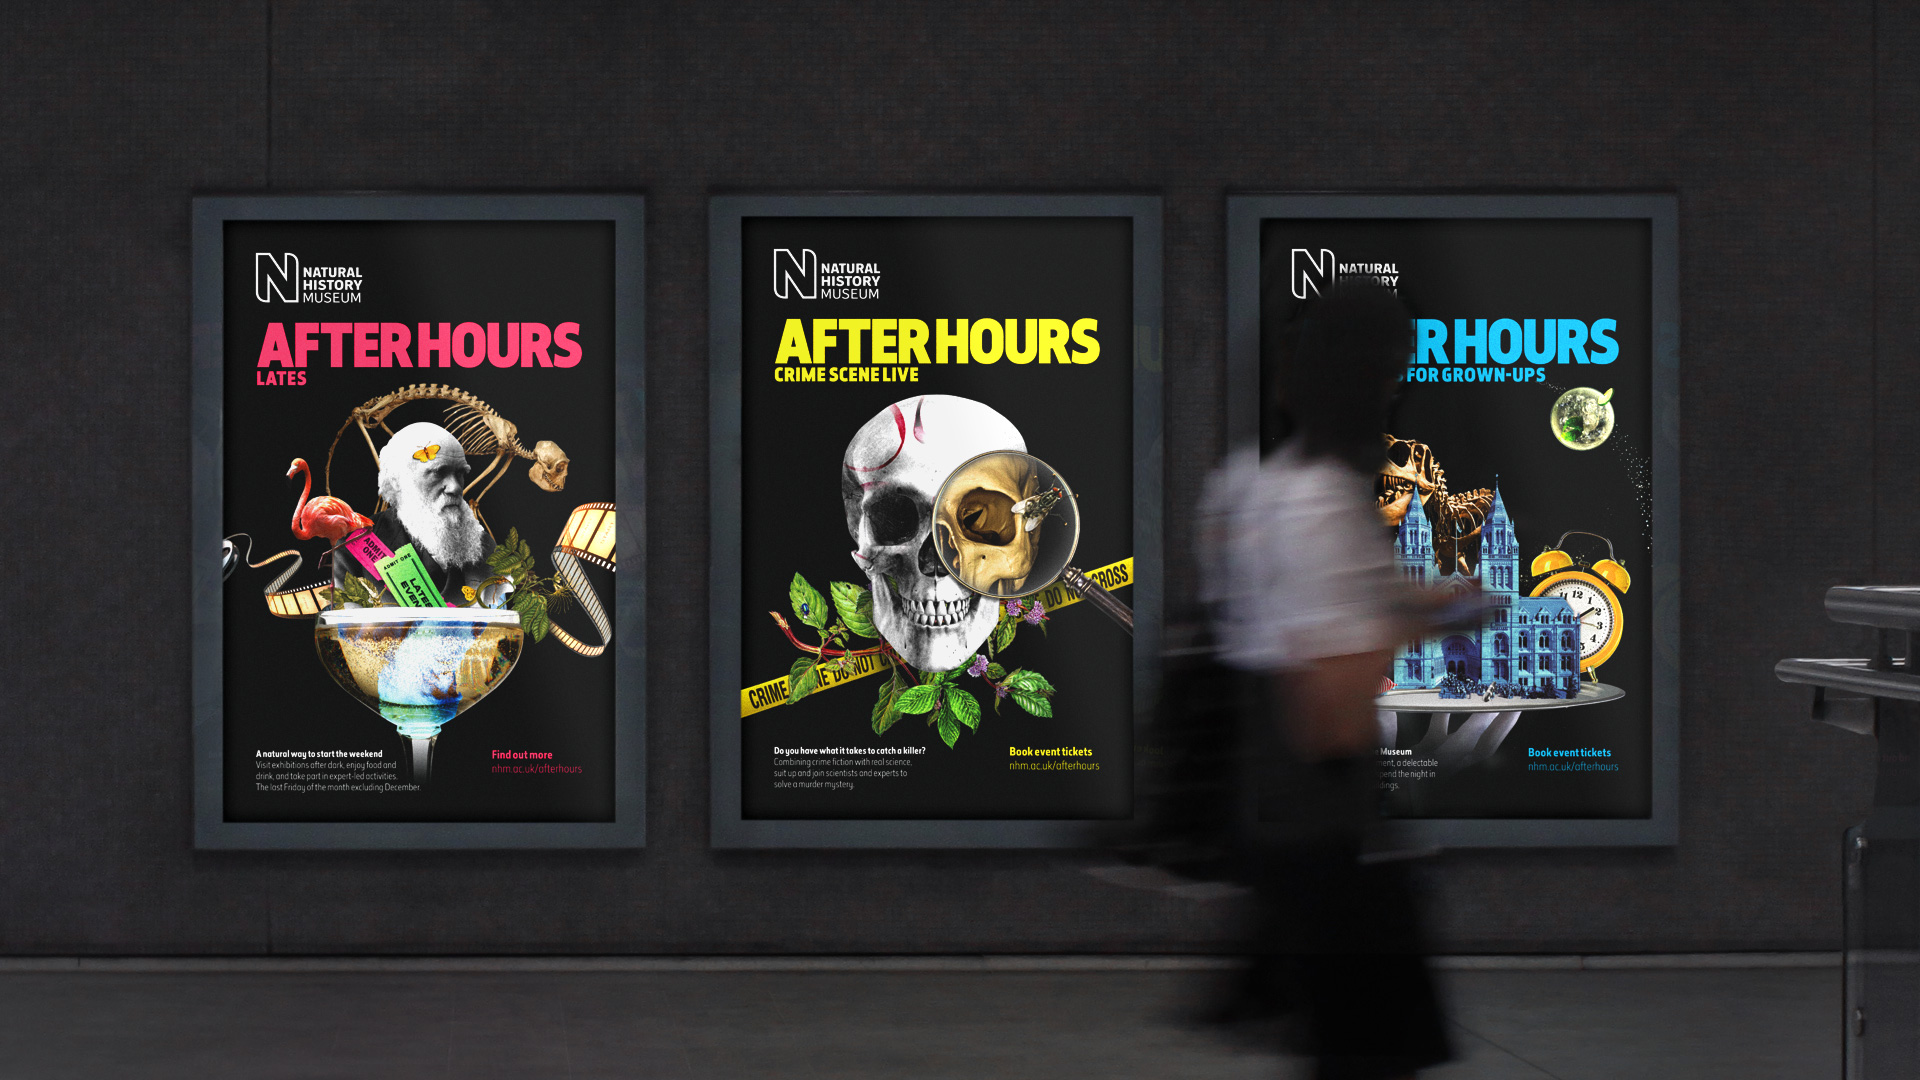 Natural History Museum: After Hours brand identity